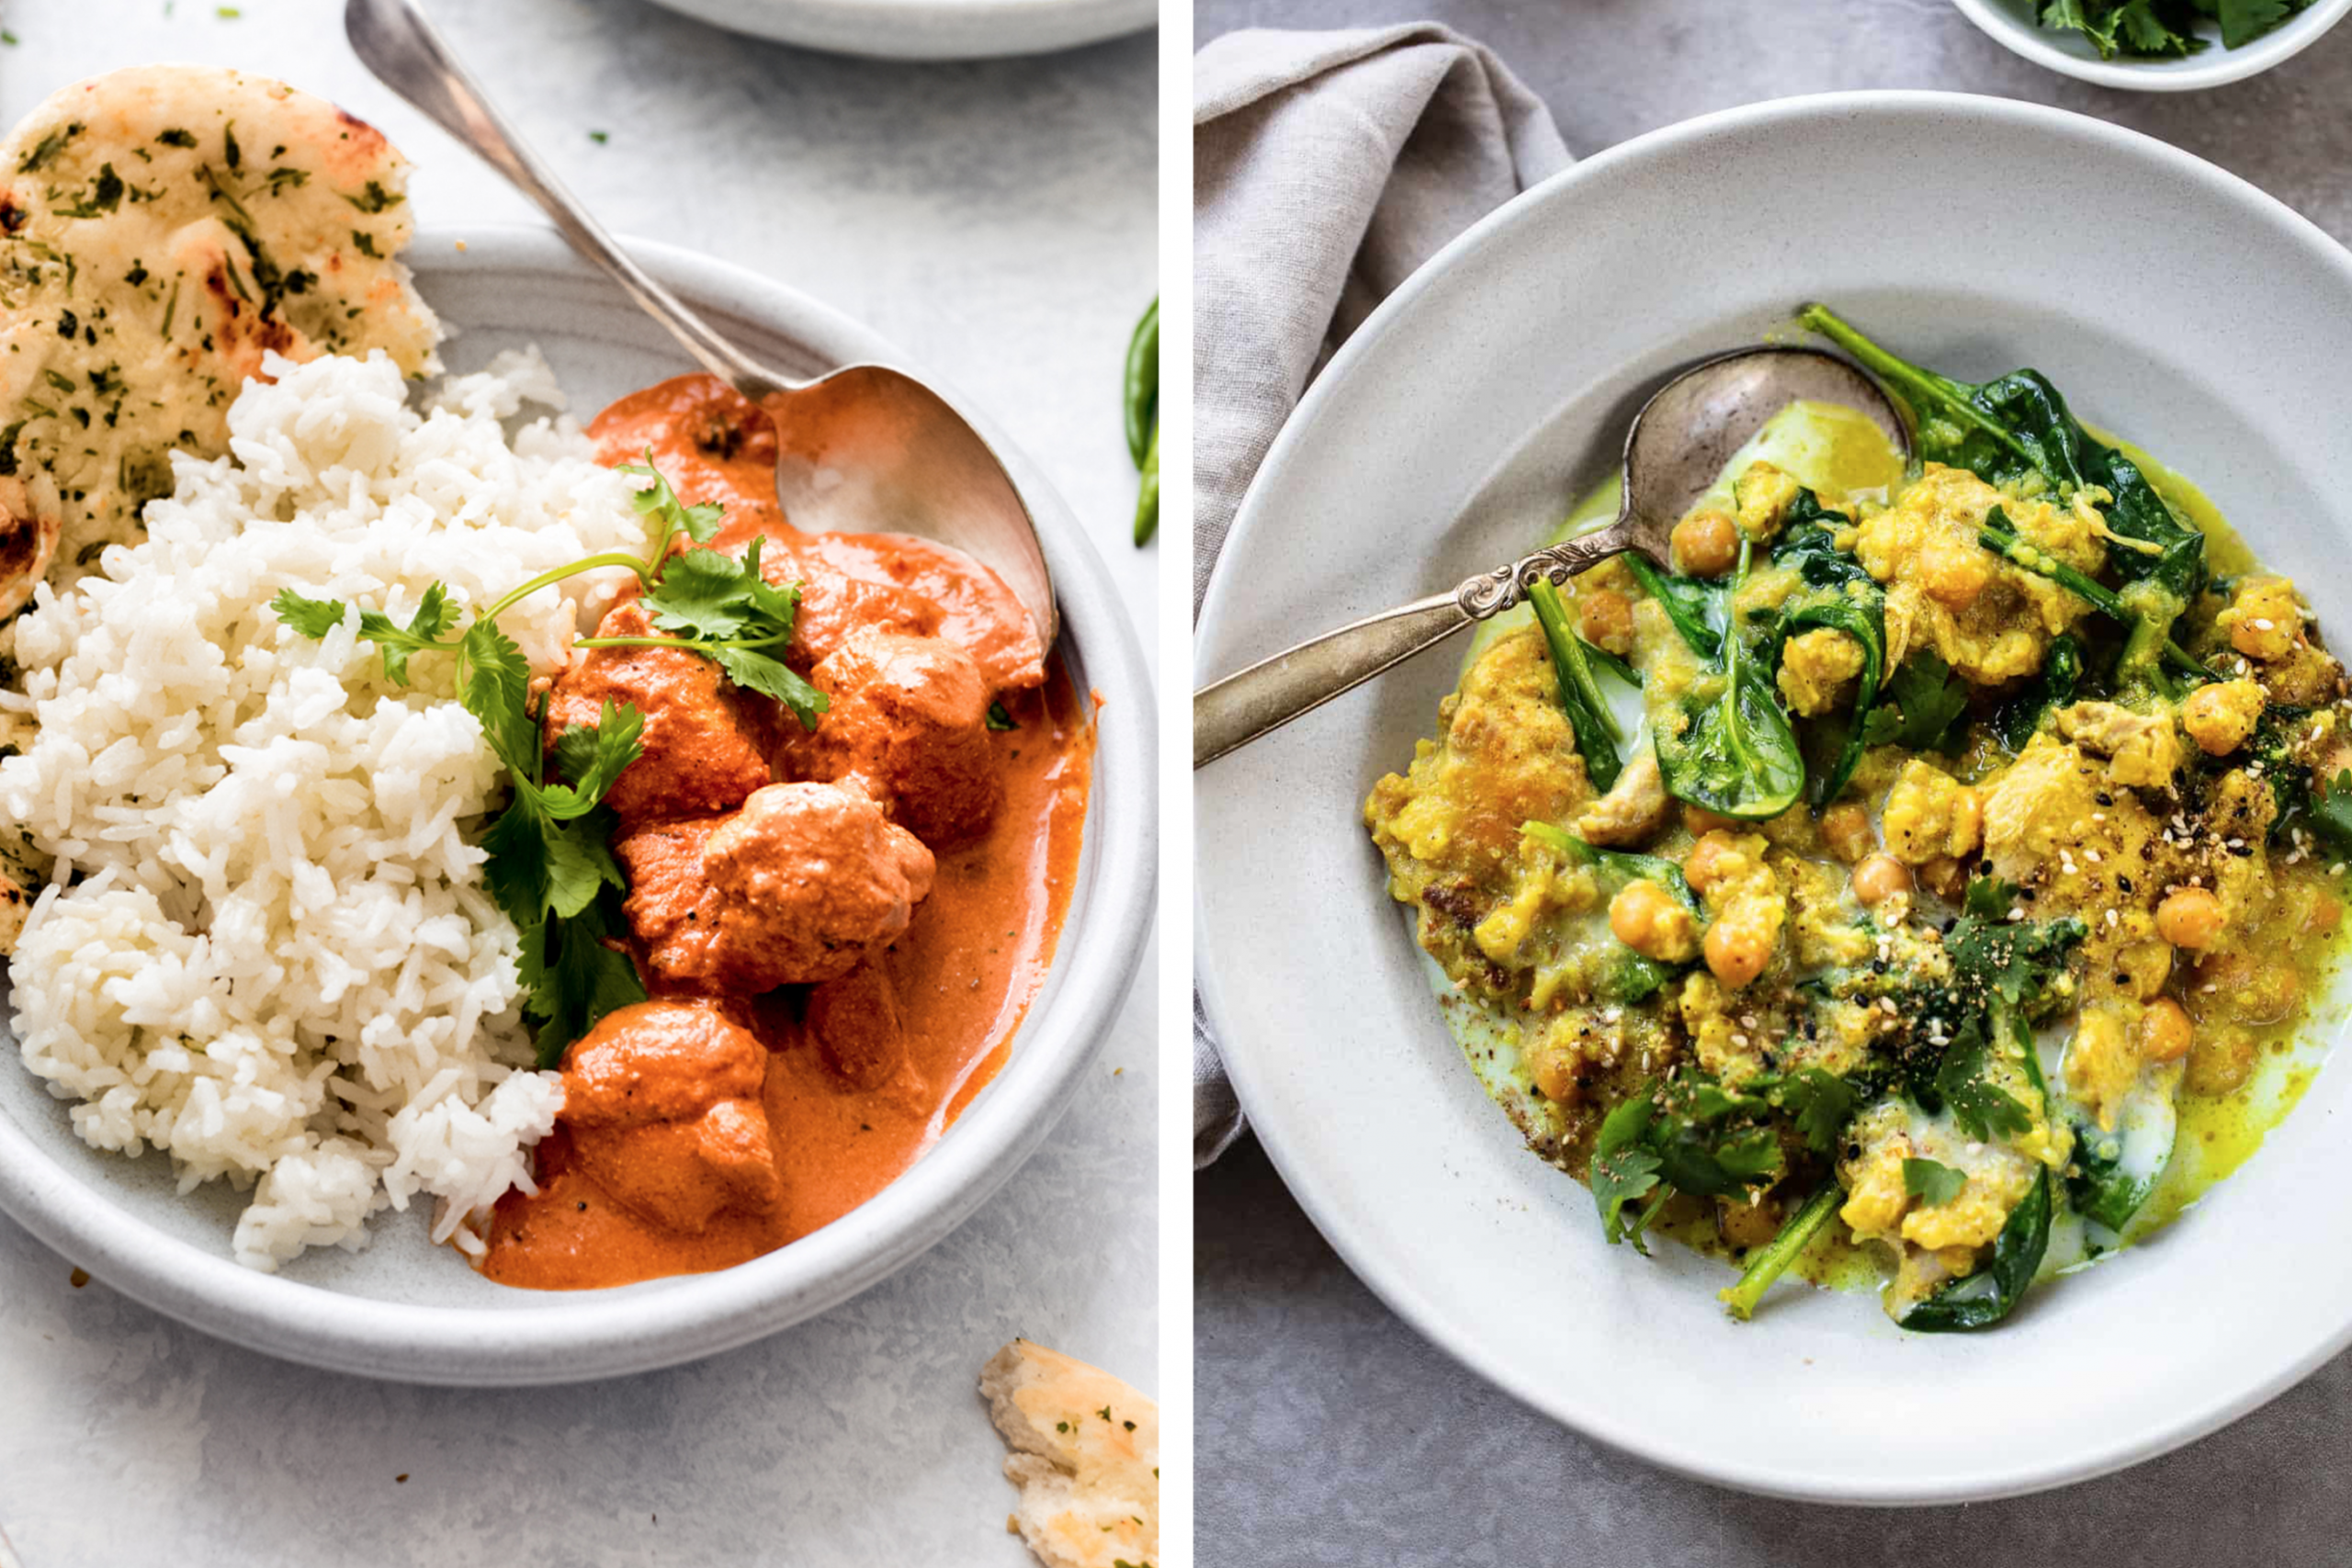 10 Easy Indian Instant Pot Recipes For Dinner Tonight - Recipes For Dinner Tonight